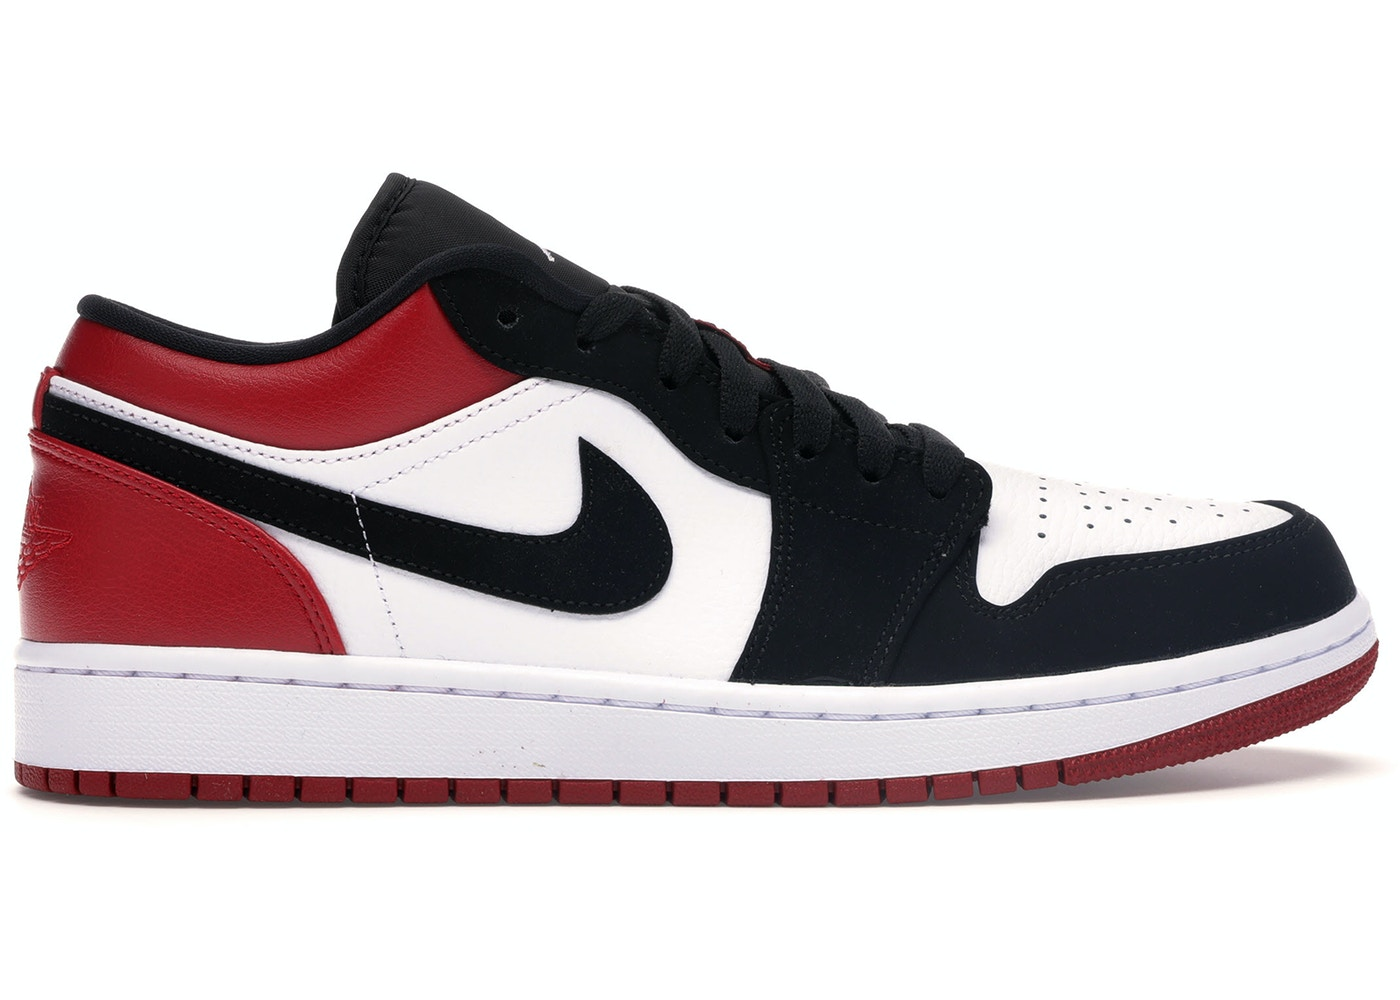 buy online fe682 e0389 Buy Air Jordan 1 Shoes   Deadstock Sneakers